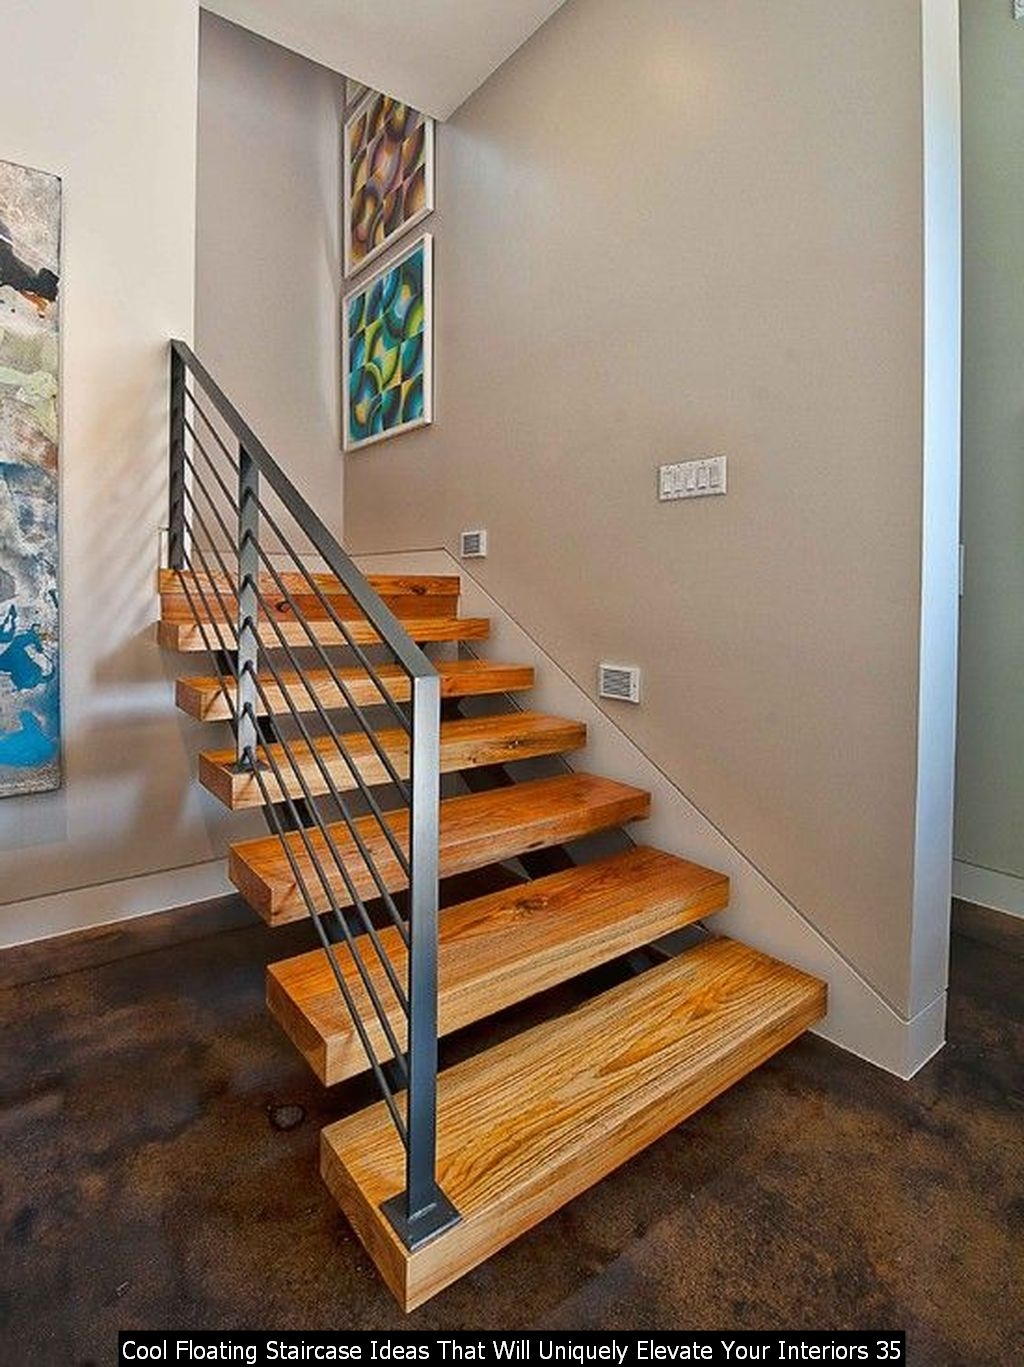 Cool Floating Staircase Ideas That Will Uniquely Elevate Your Interiors 35